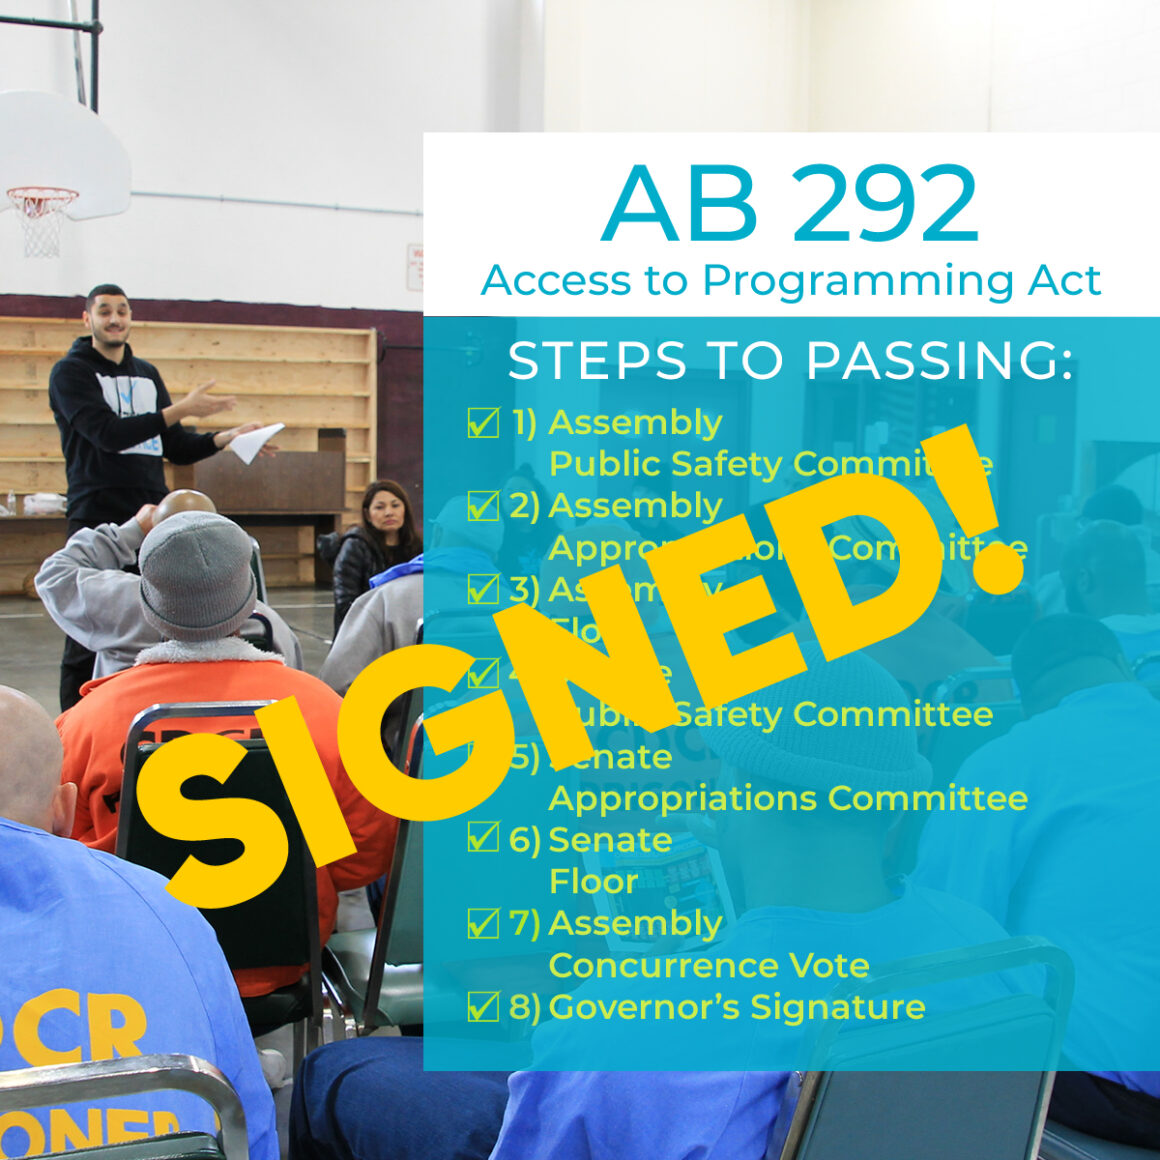 Access to Programming Act (AB 292)